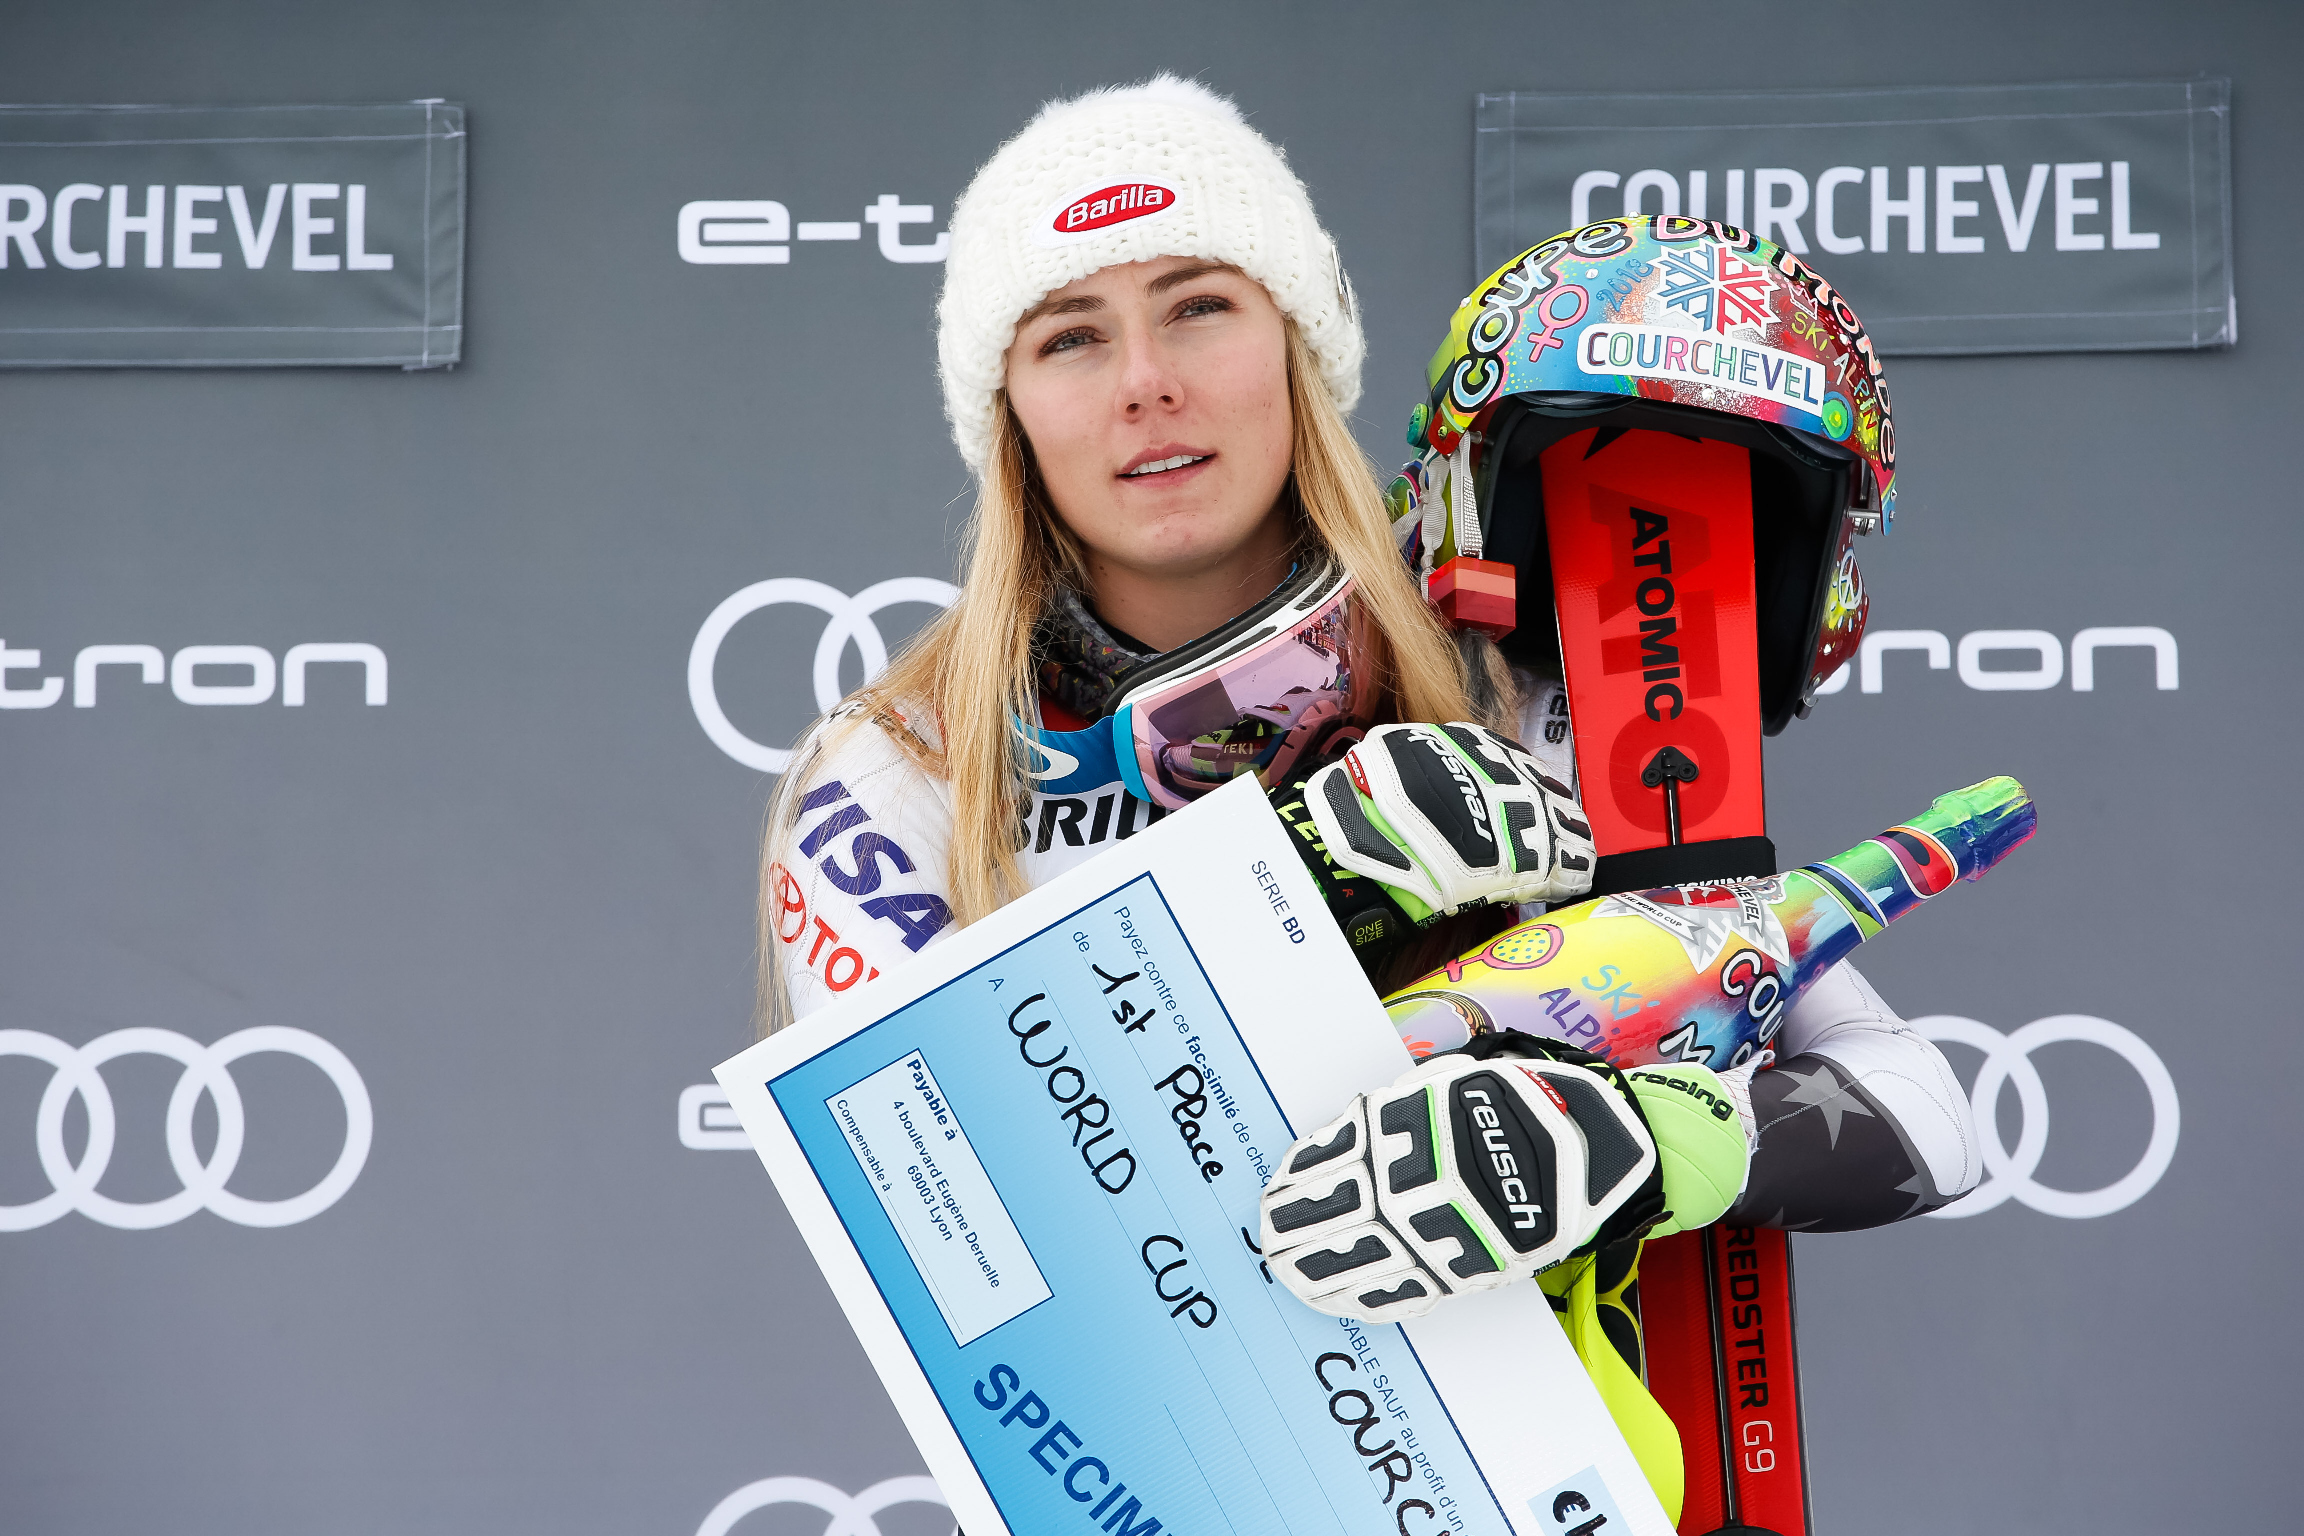 COURCHEVEL, FRANCE - DECEMBER 22: Mikaela Shiffrin of USA takes 1st place during the Audi FIS Alpine Ski World Cup Women's Slalom on December 22, 2018 in Courchevel France. (Photo by Christophe Pallot/Agence Zoom/Getty Images)